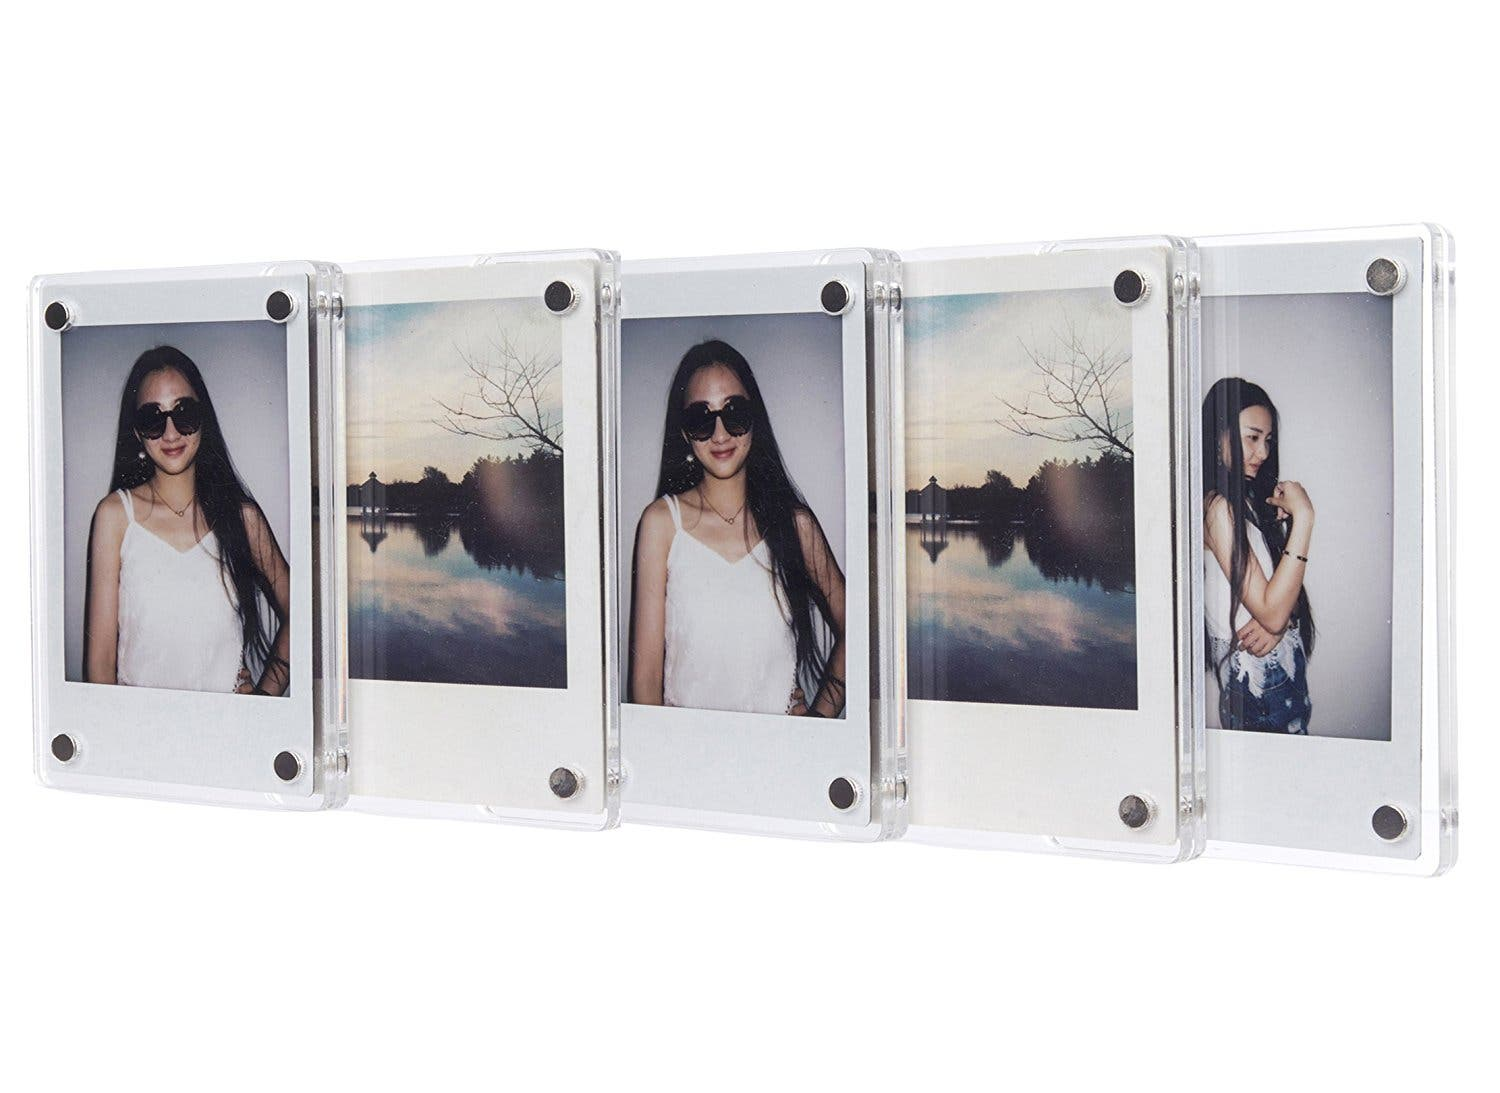 Display Your Instax Photos with CAIUL Clear Acrylic Photo Magnet Frame